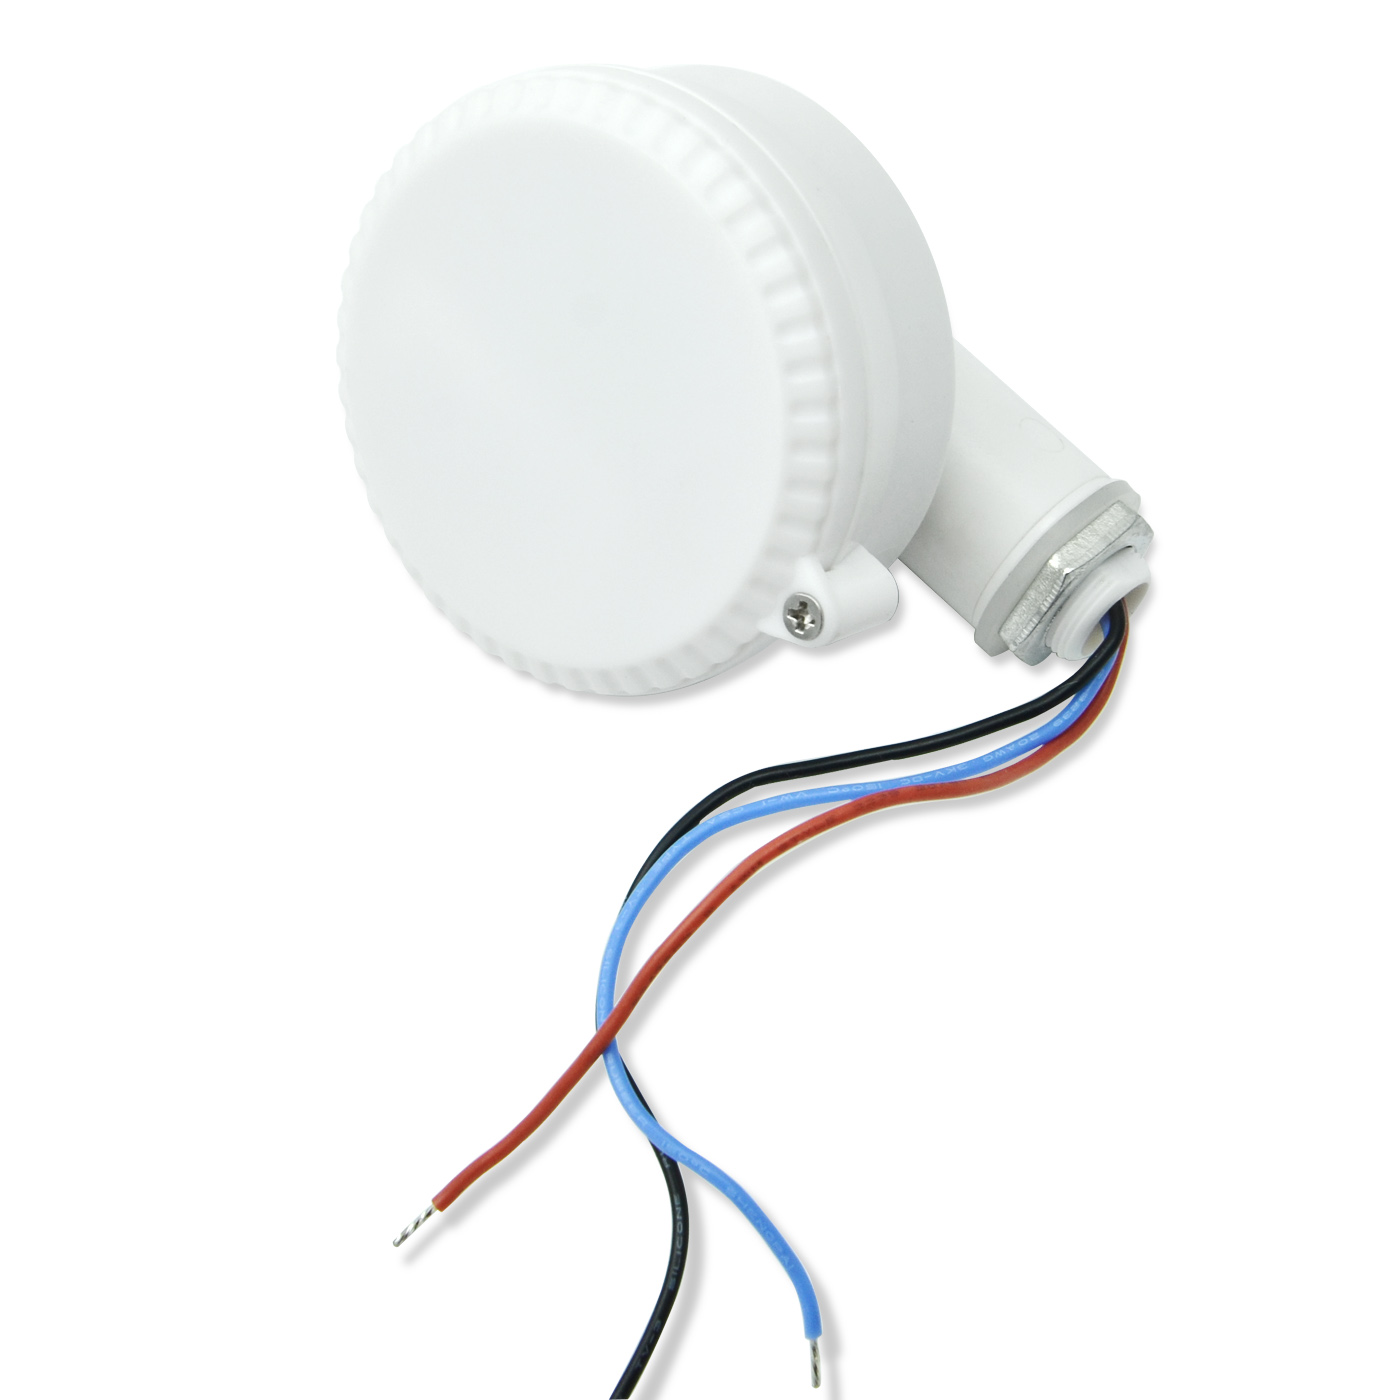 High definition Led Remote Control -